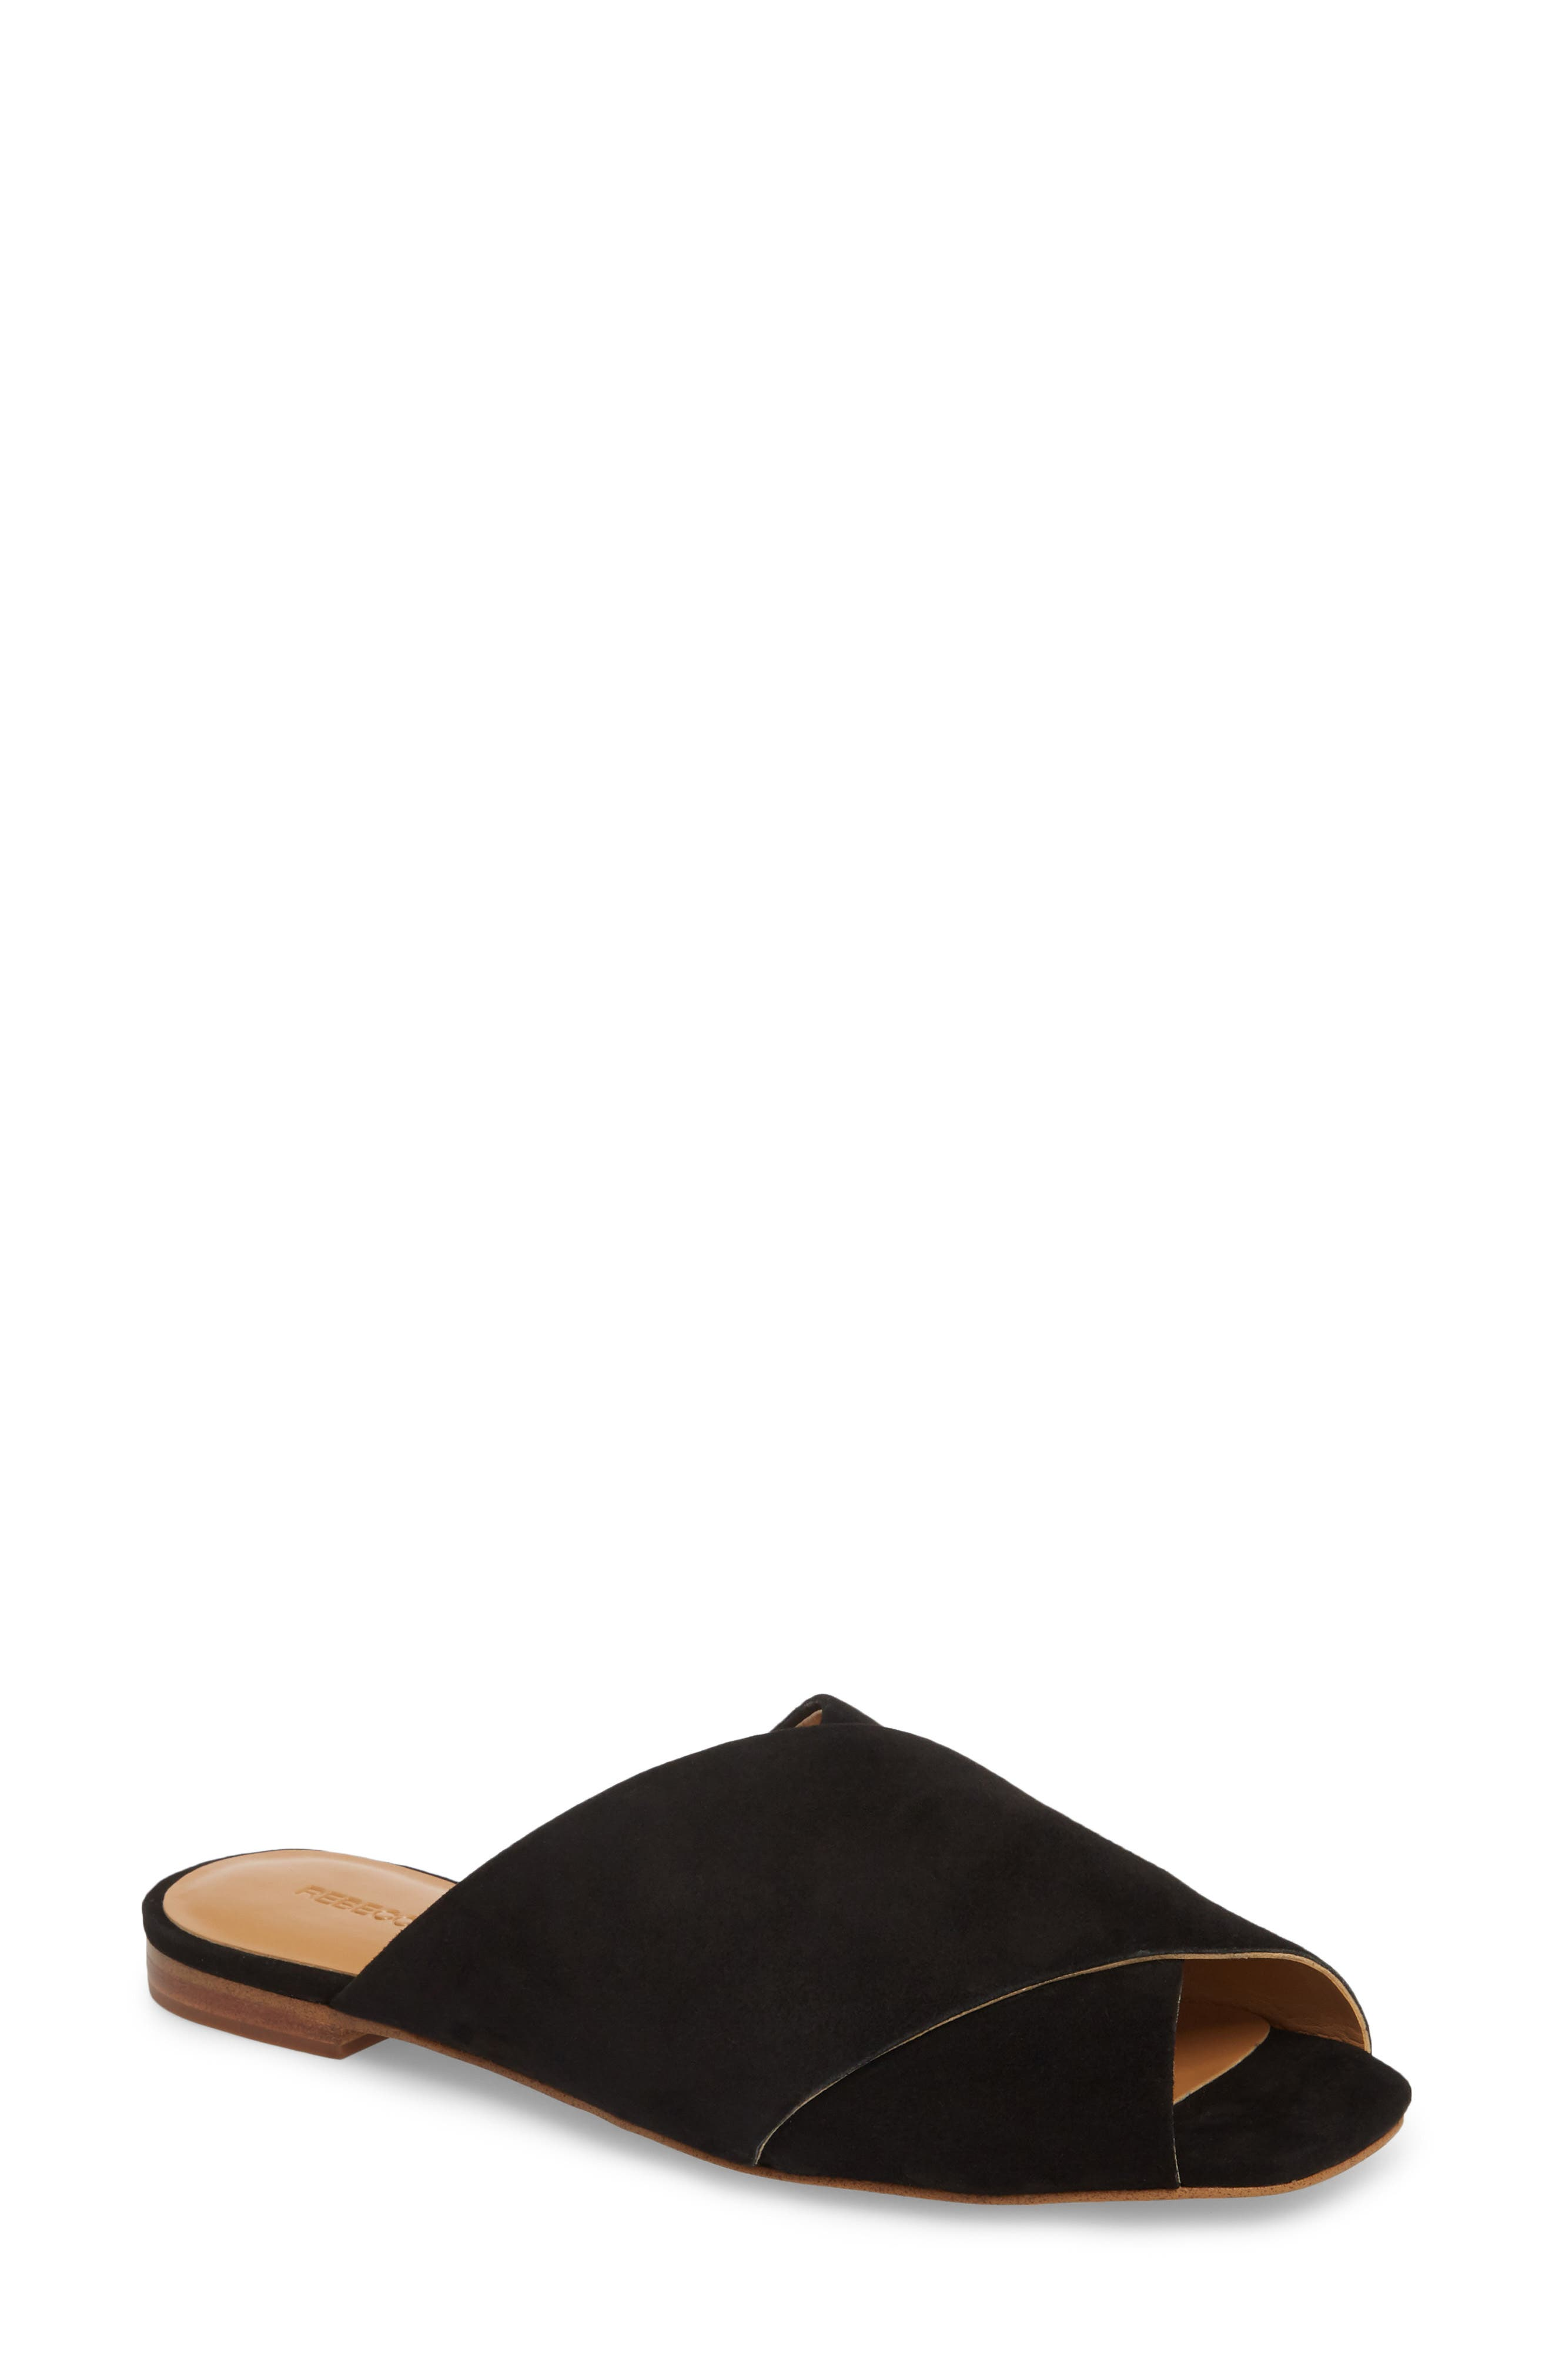 Anden Slide Sandal,                             Main thumbnail 1, color,                             BLACK SUEDE